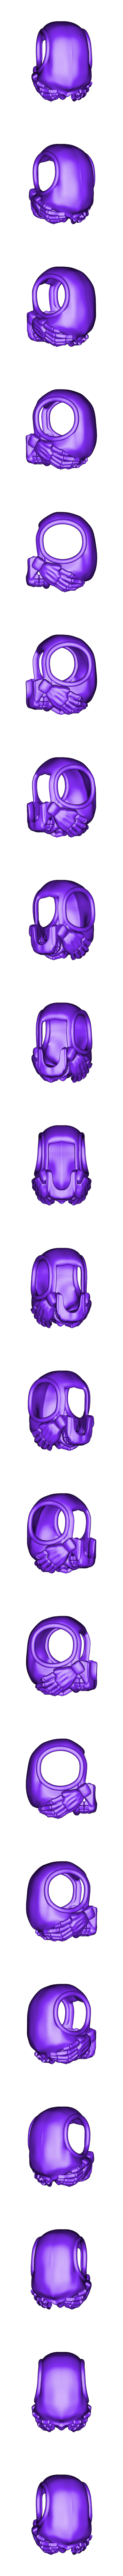 s2.stl Download free STL file three wise skull • 3D print object, Janusz